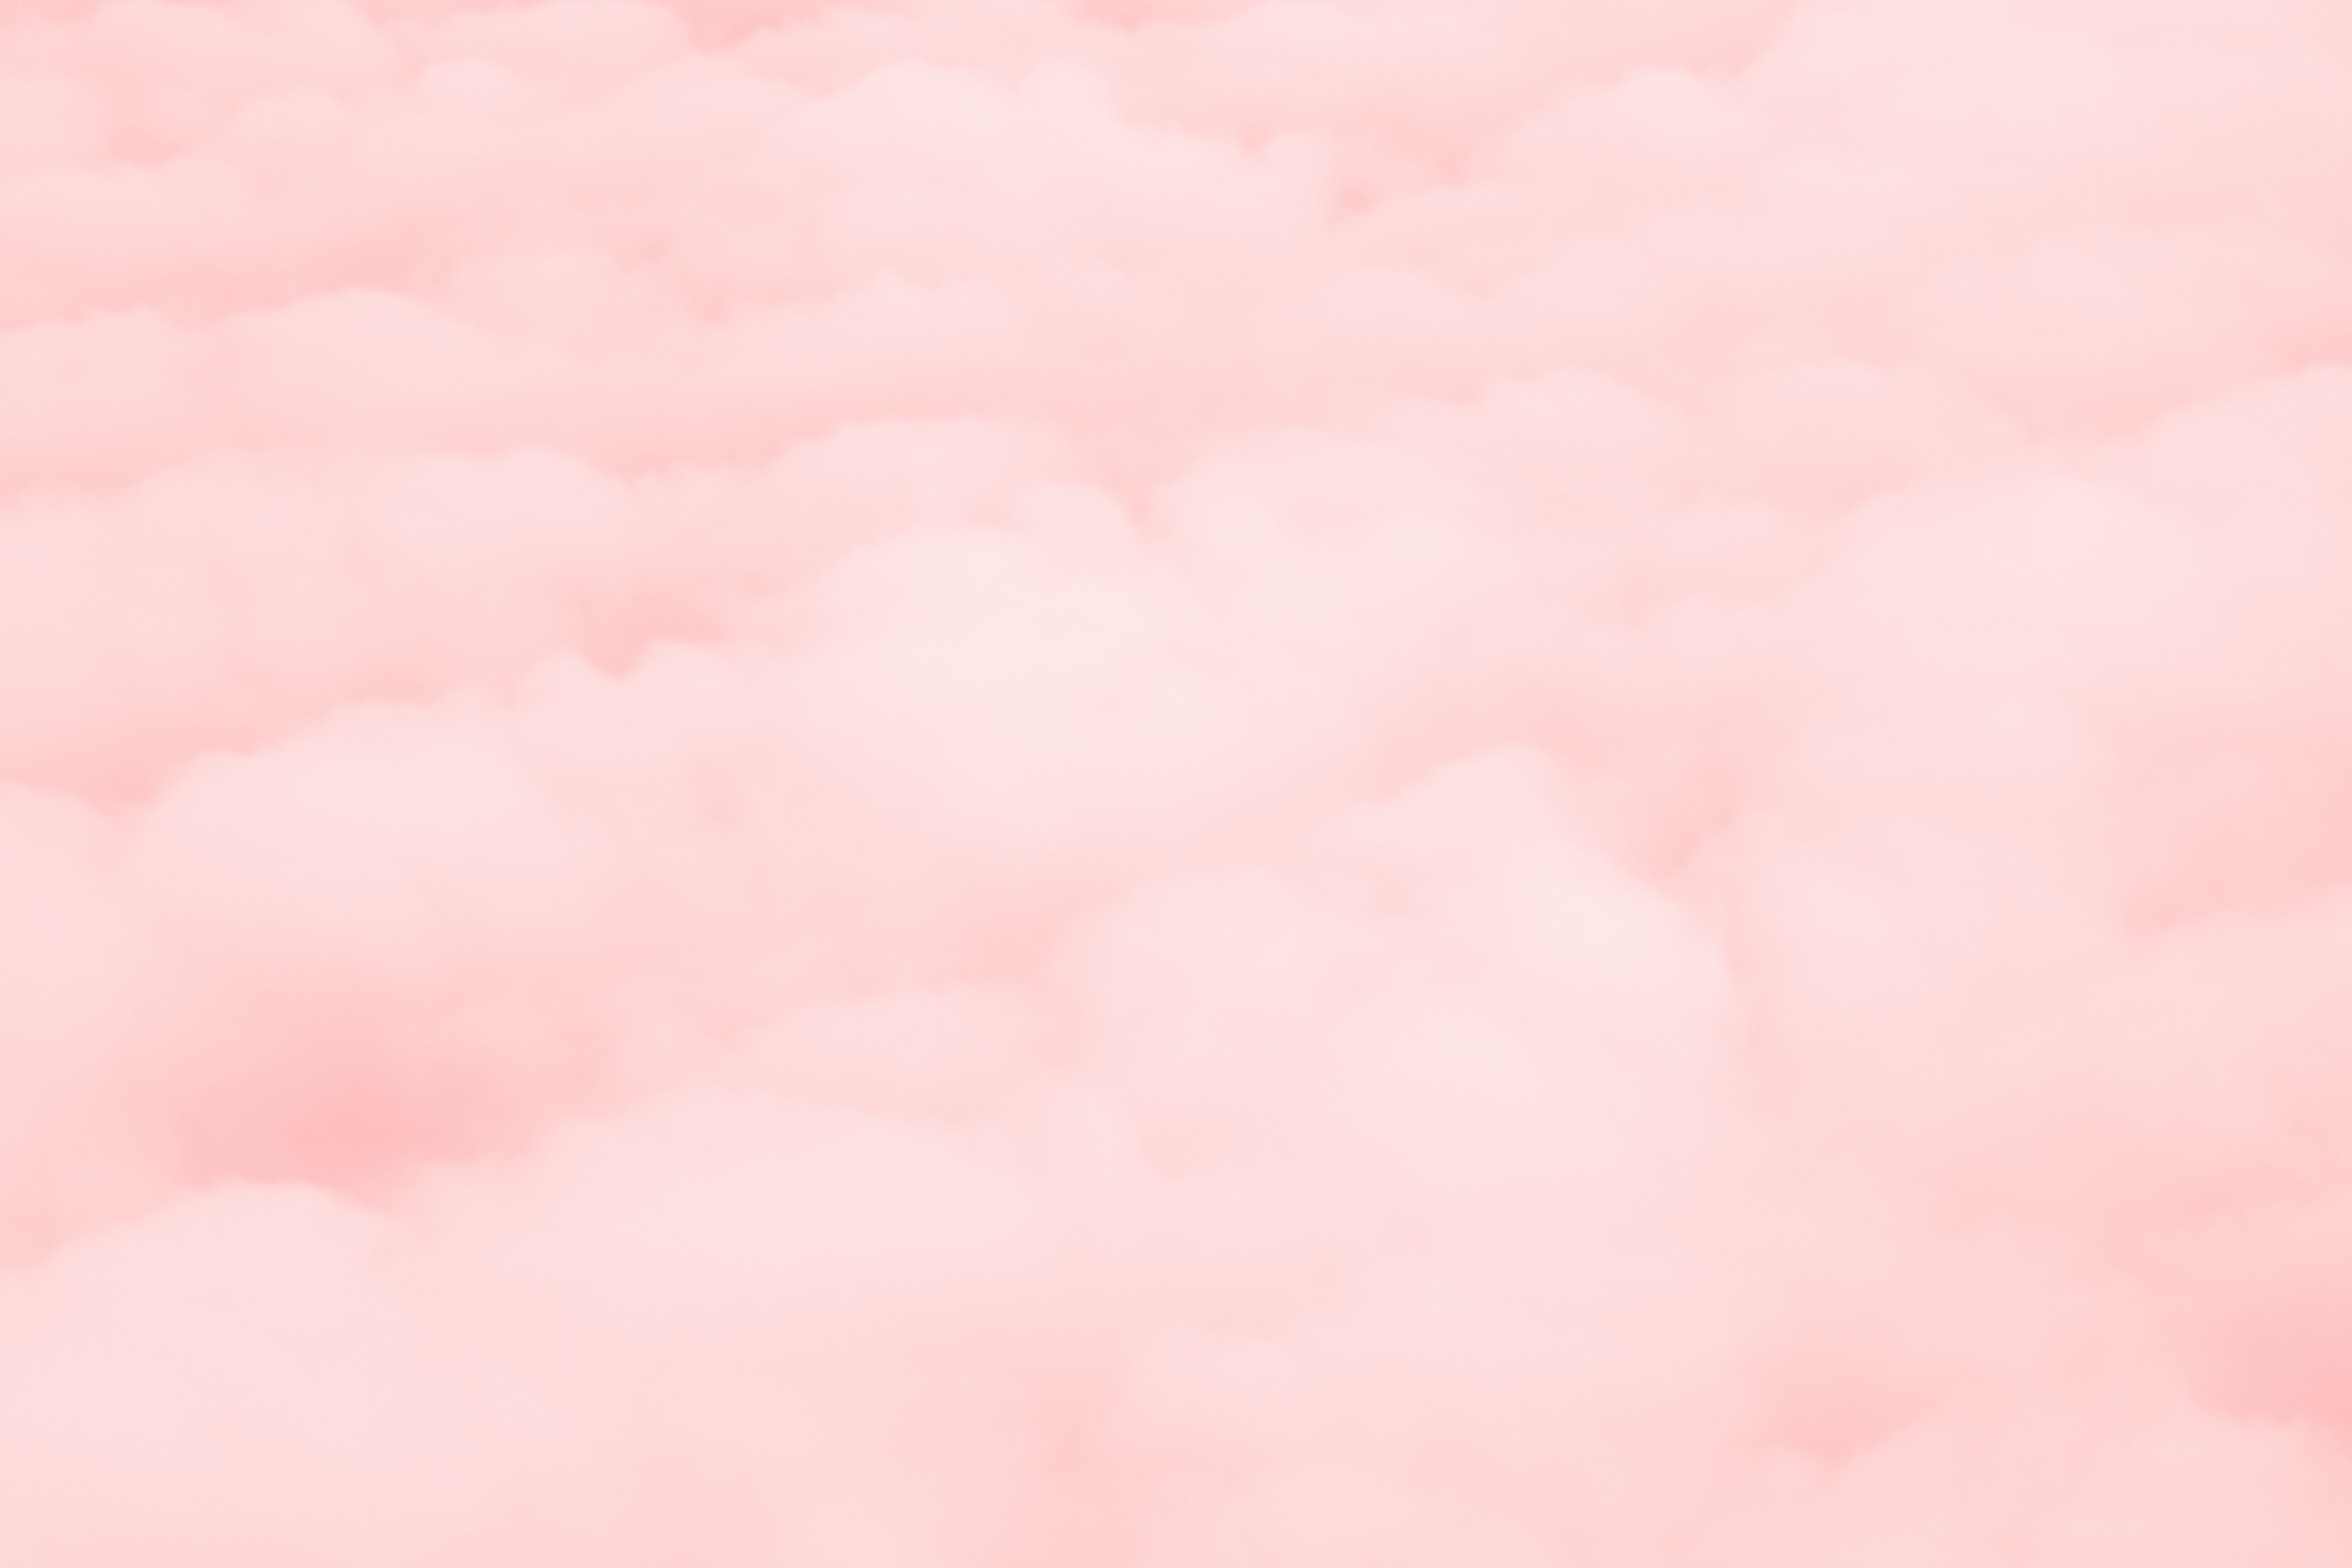 1000+ Amazing Pink Background Photos · Pexels · Free Stock ...